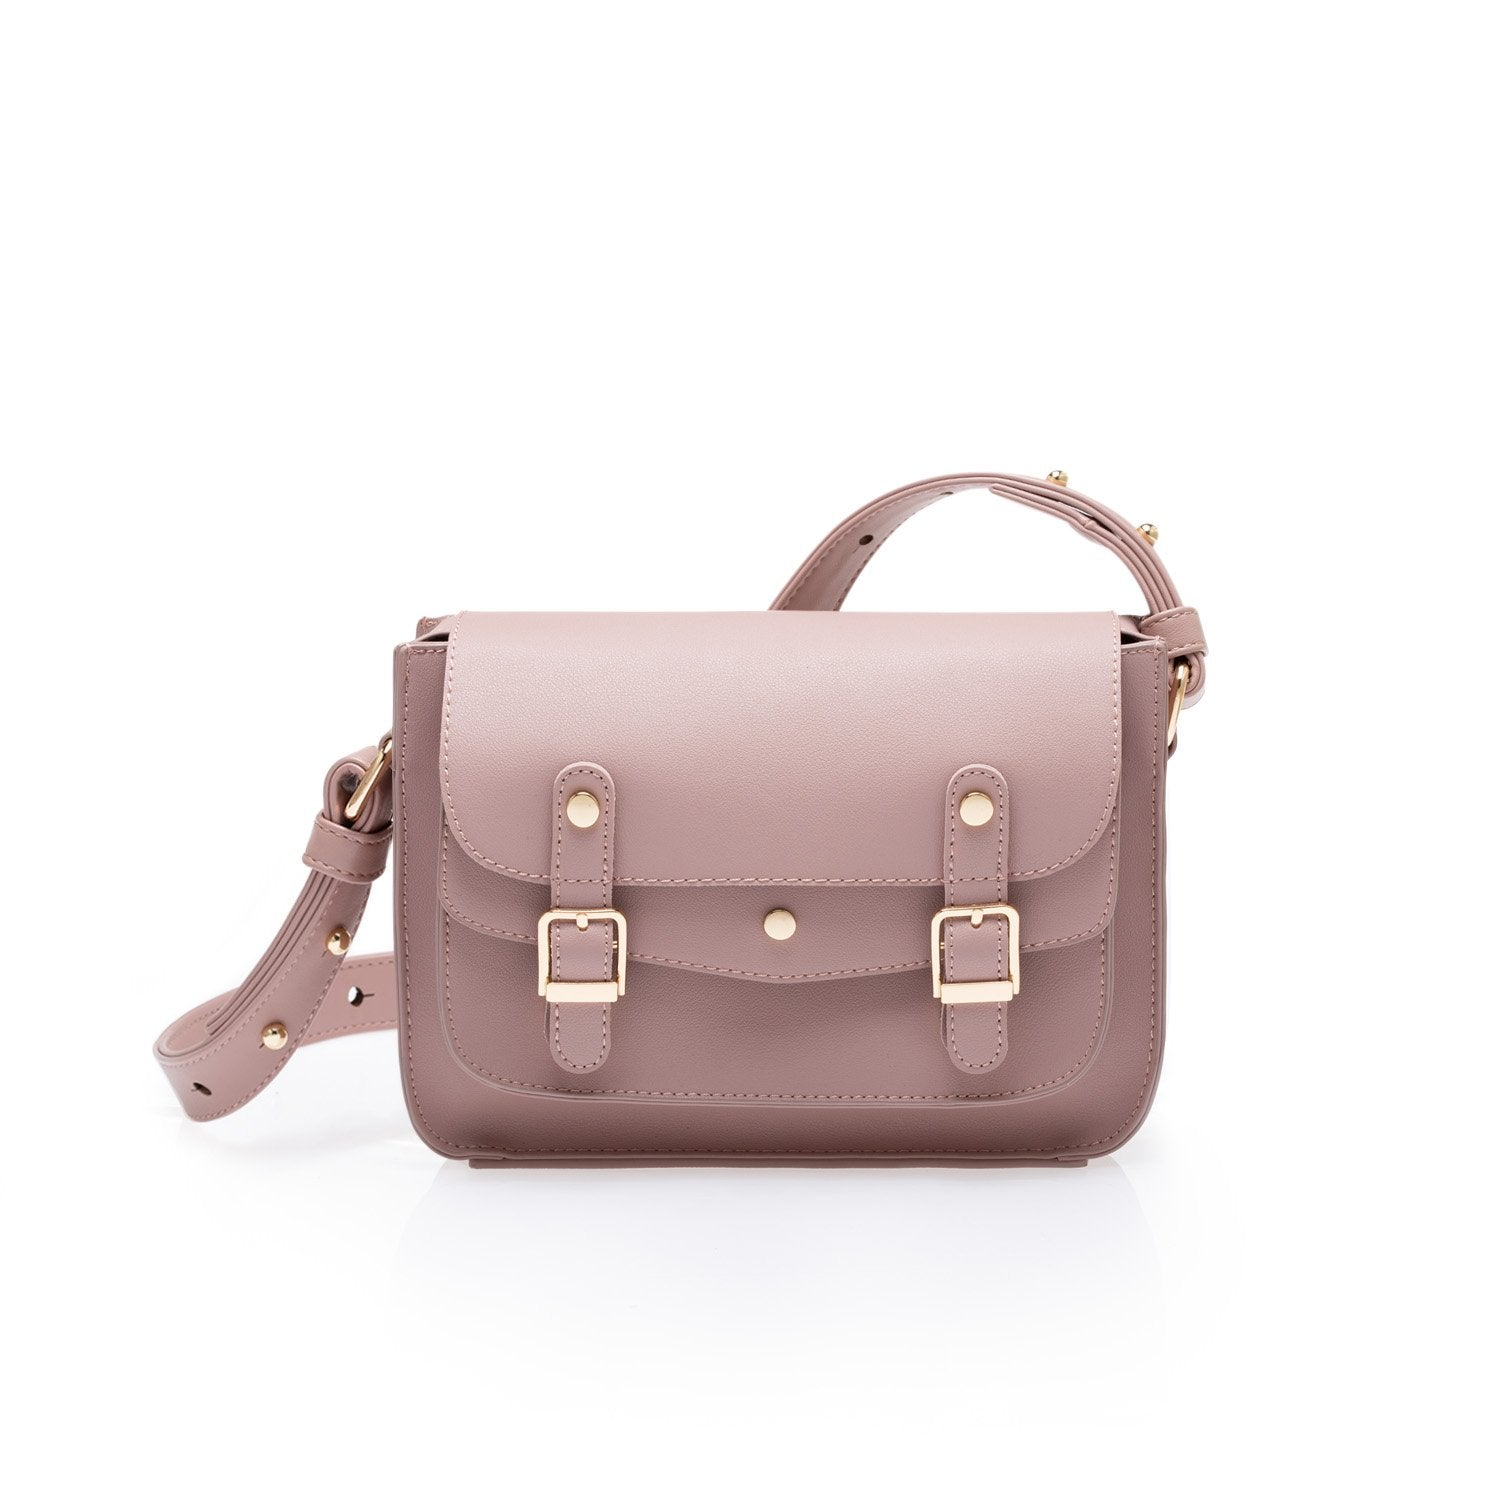 ESATCH S - NUDE PINK